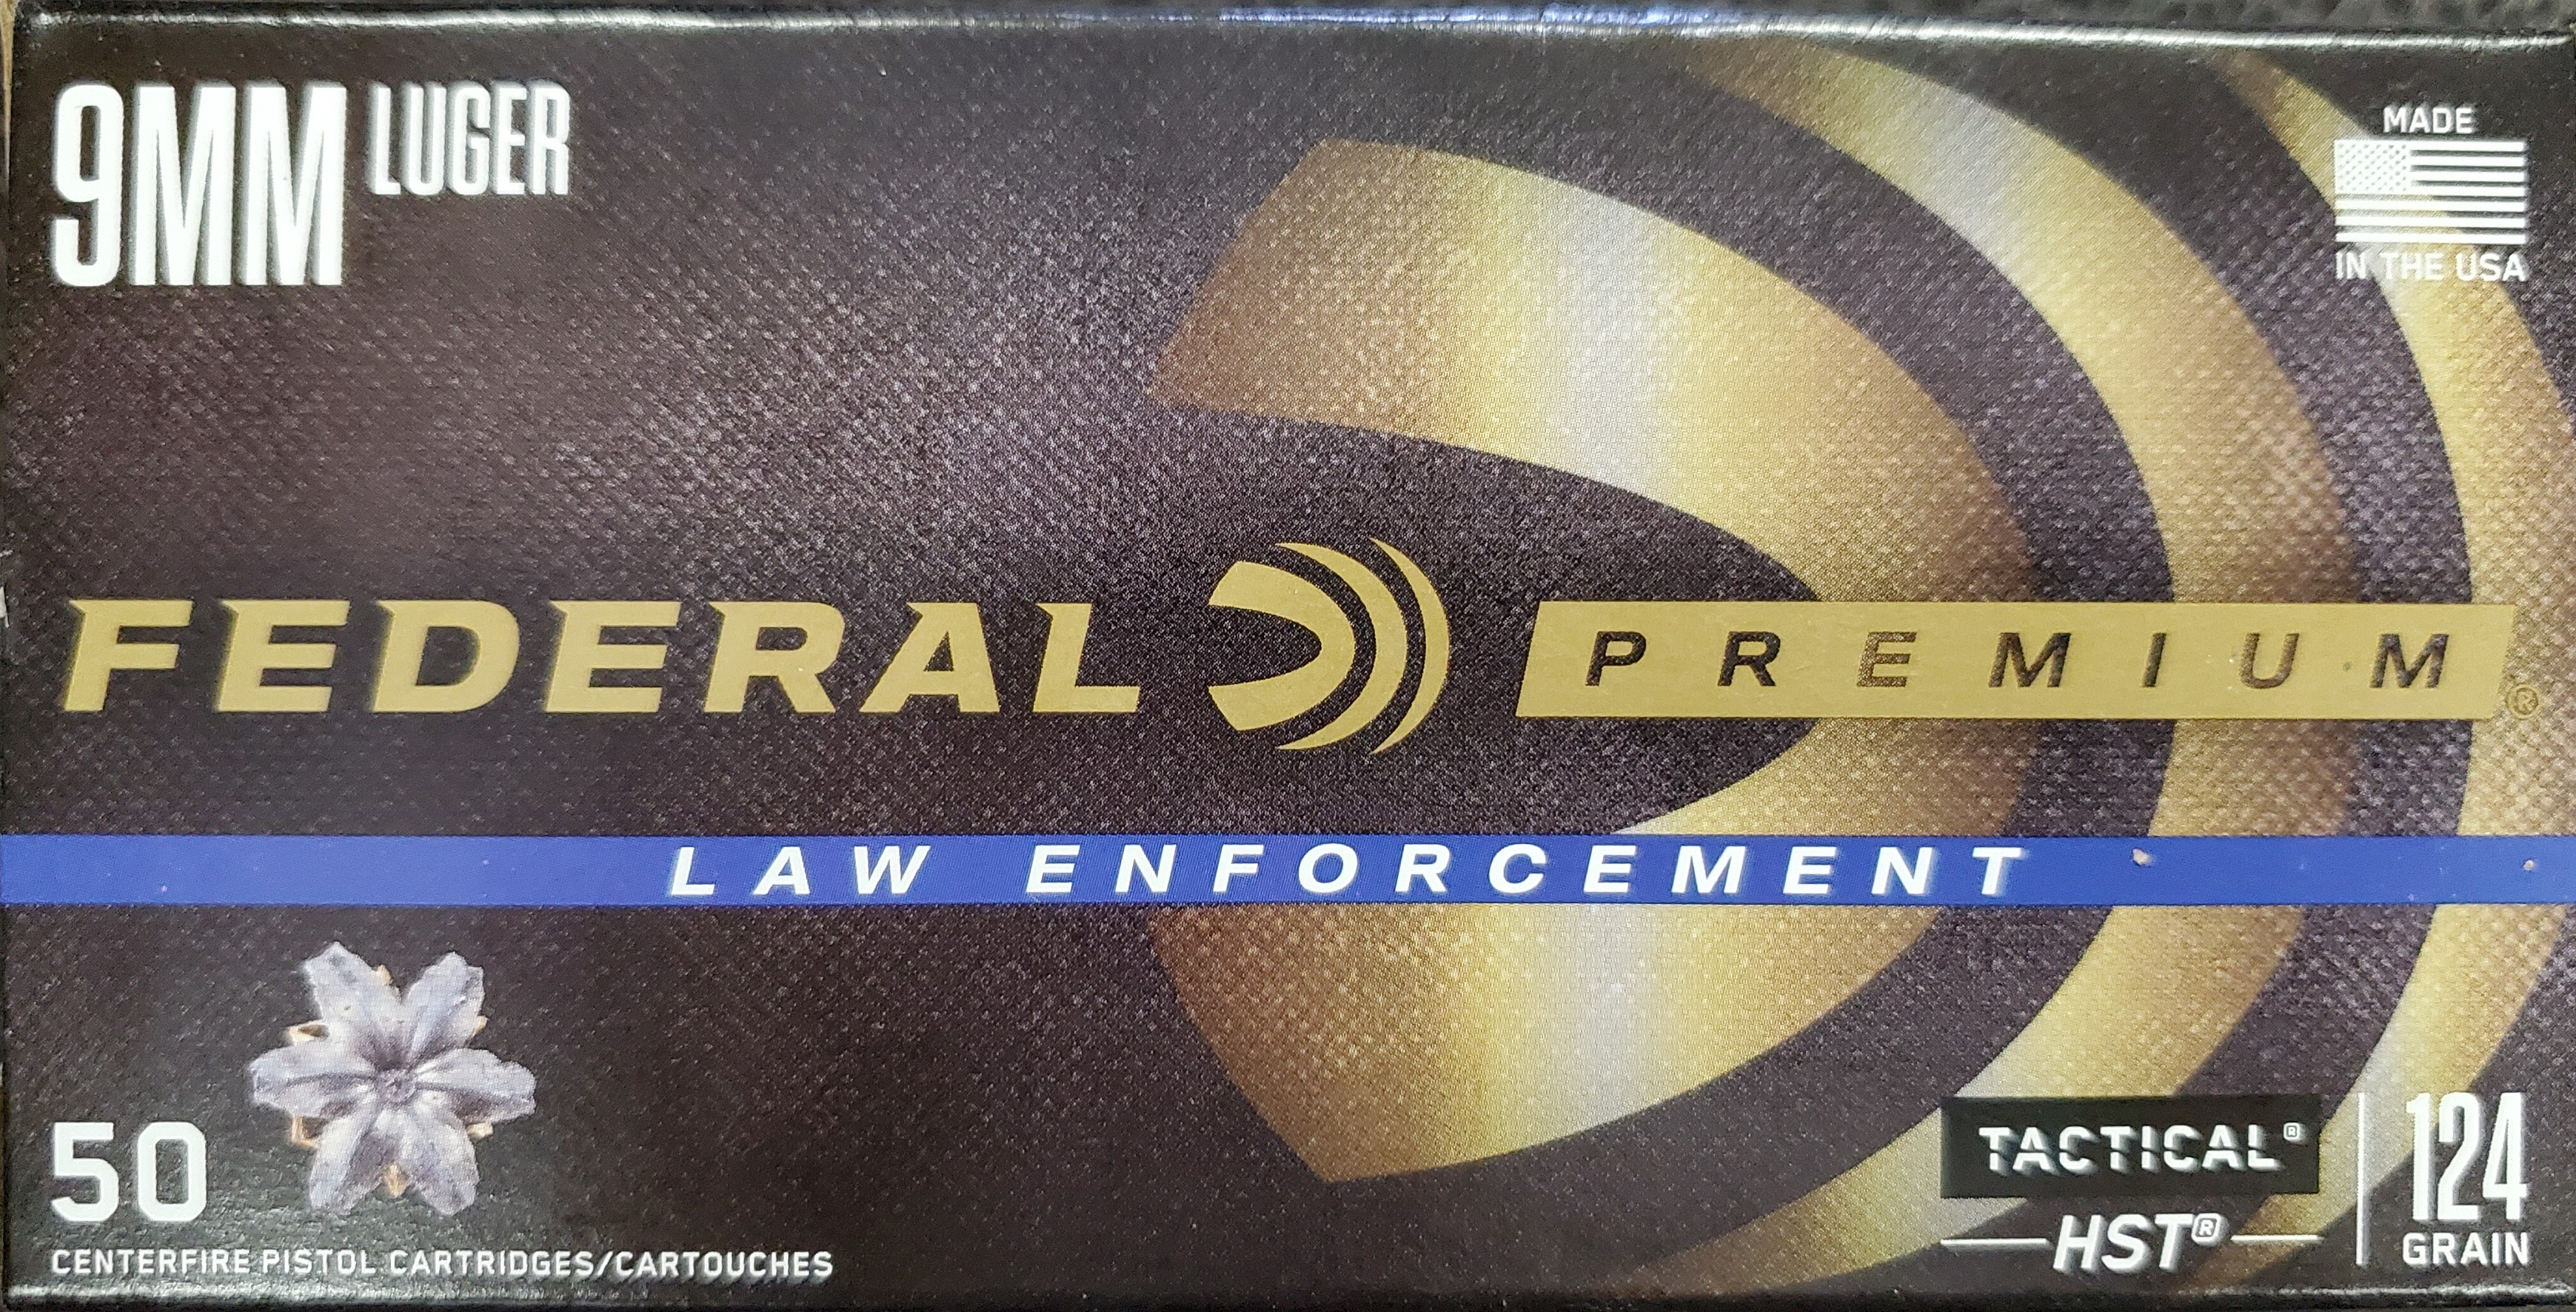 Fereral Premium Law Enforcement HST 9mm Luger